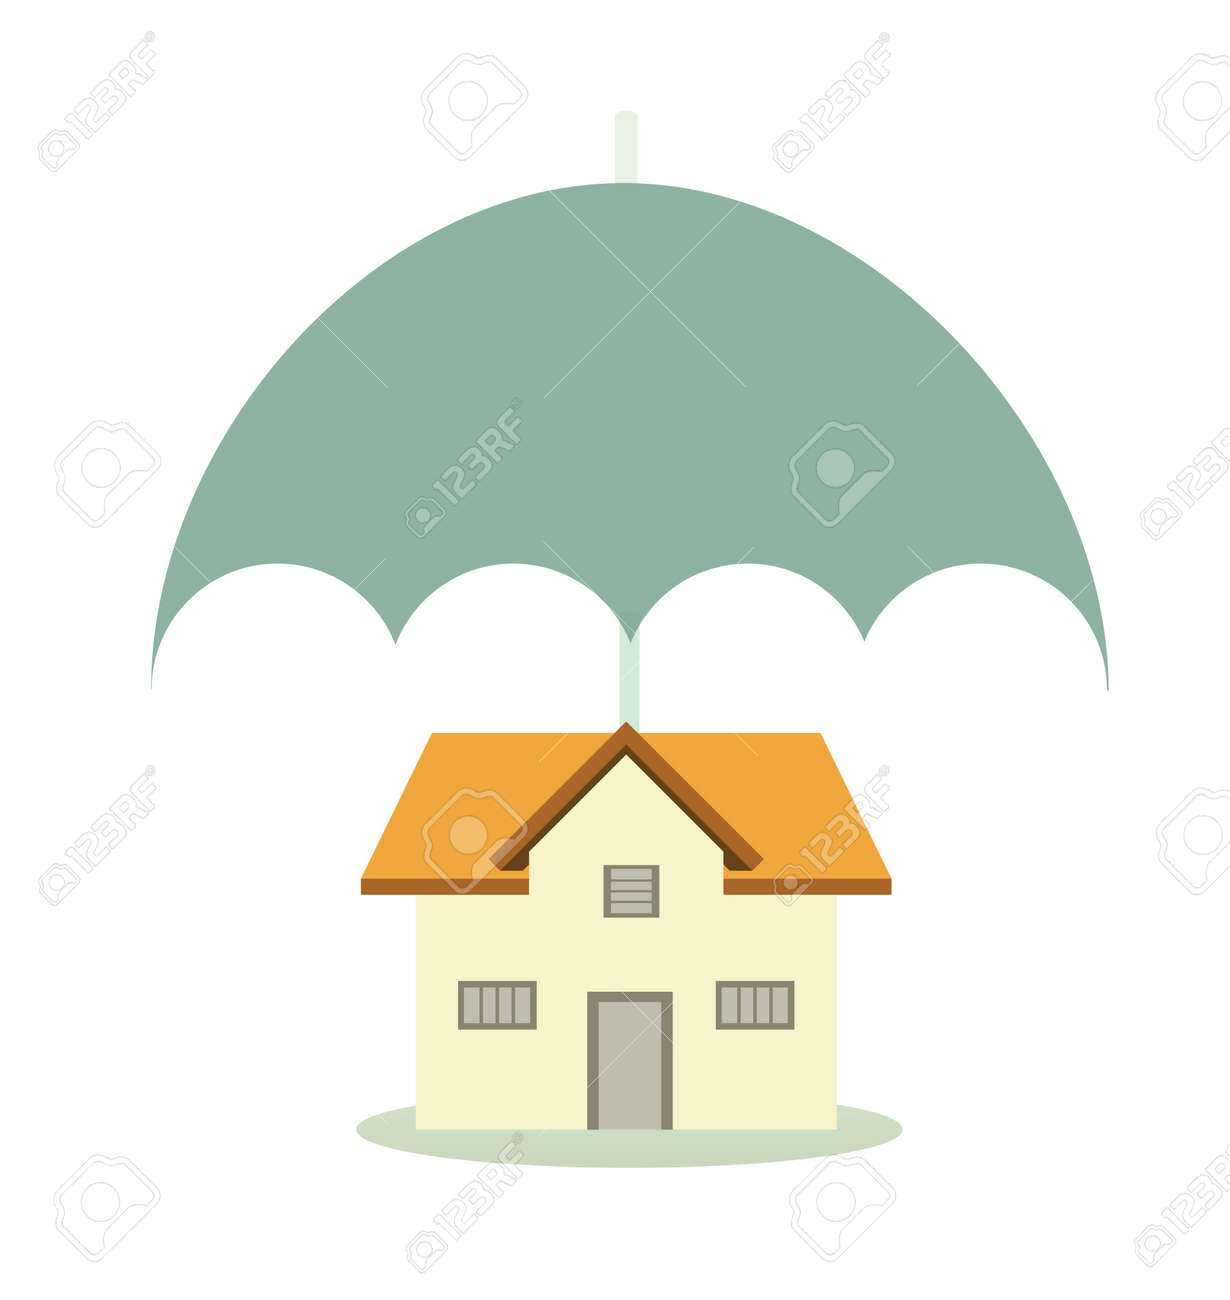 House sheltering with an insurance umbrella Stock Photo - 7860961